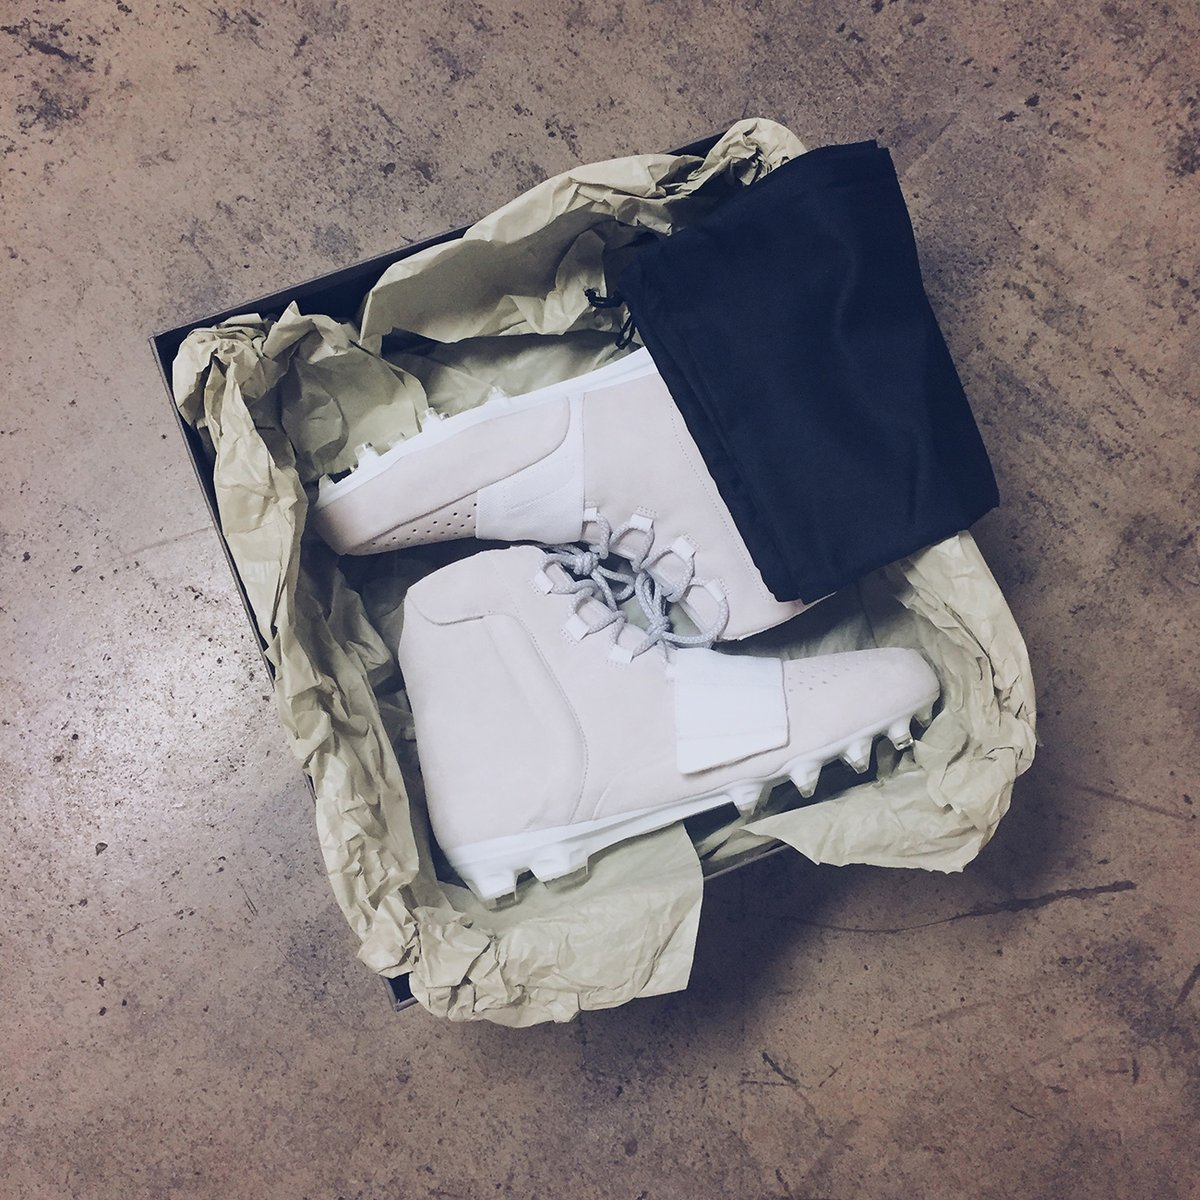 cdf13651f11c1 Kanye west blessed von miller with adidas yeezy boost cleats (via   millerlite40)